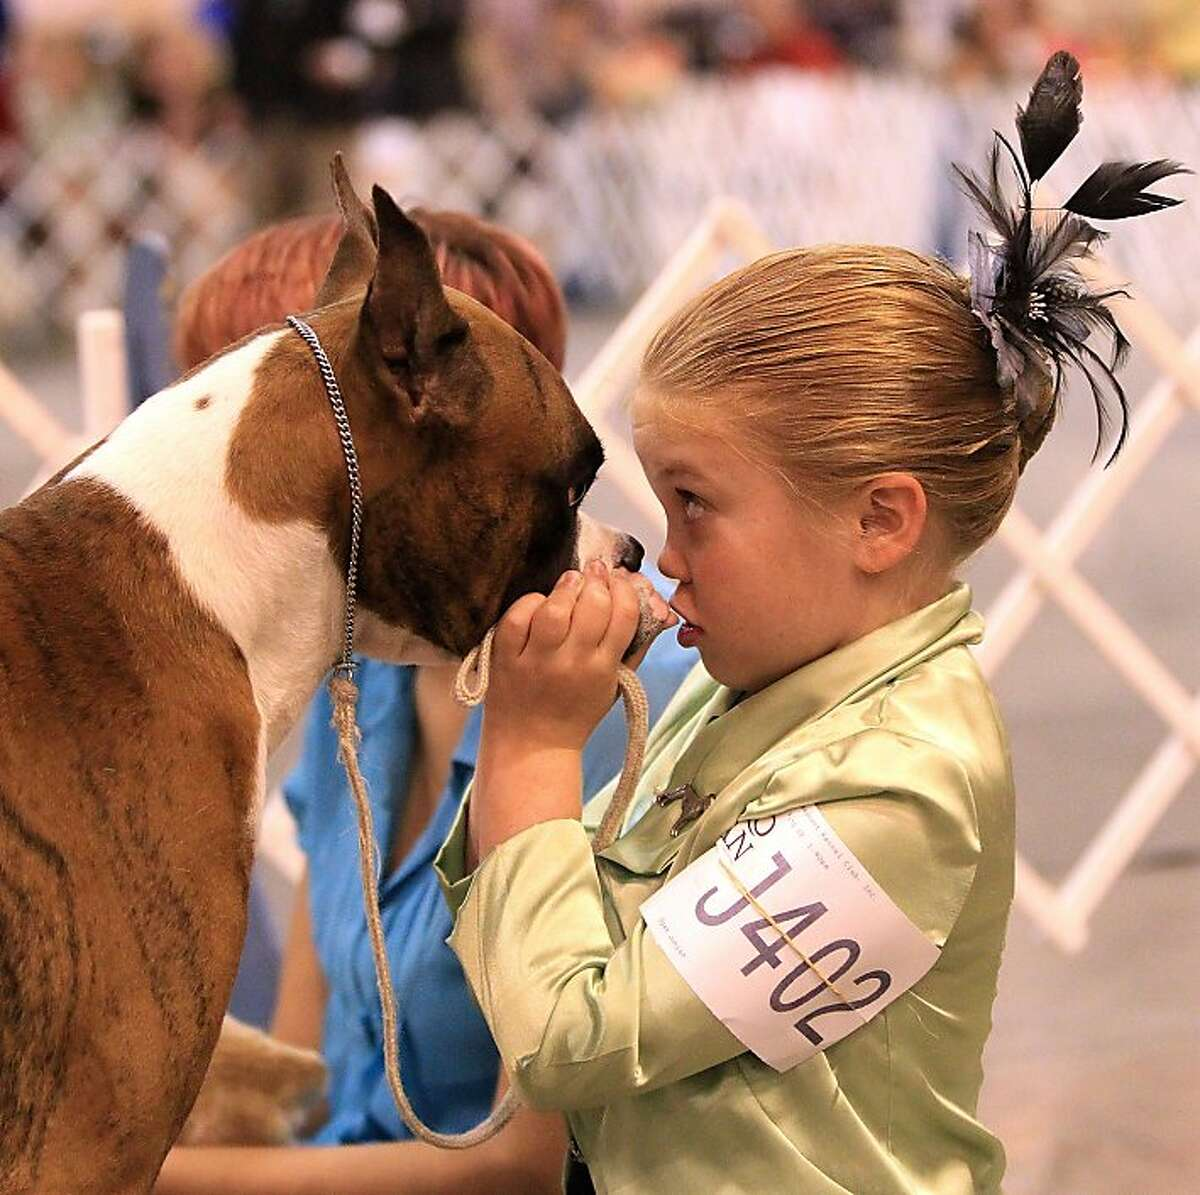 Don't jump on the judges, don't chase the other dogs, don't mark your territory ... Ten-year-old Jordyn Groves gives Rio a last-minute pep talk before they step into the ring in the Open Junior class judging at the Reliant Park World Series of Dog Shows in Houston.